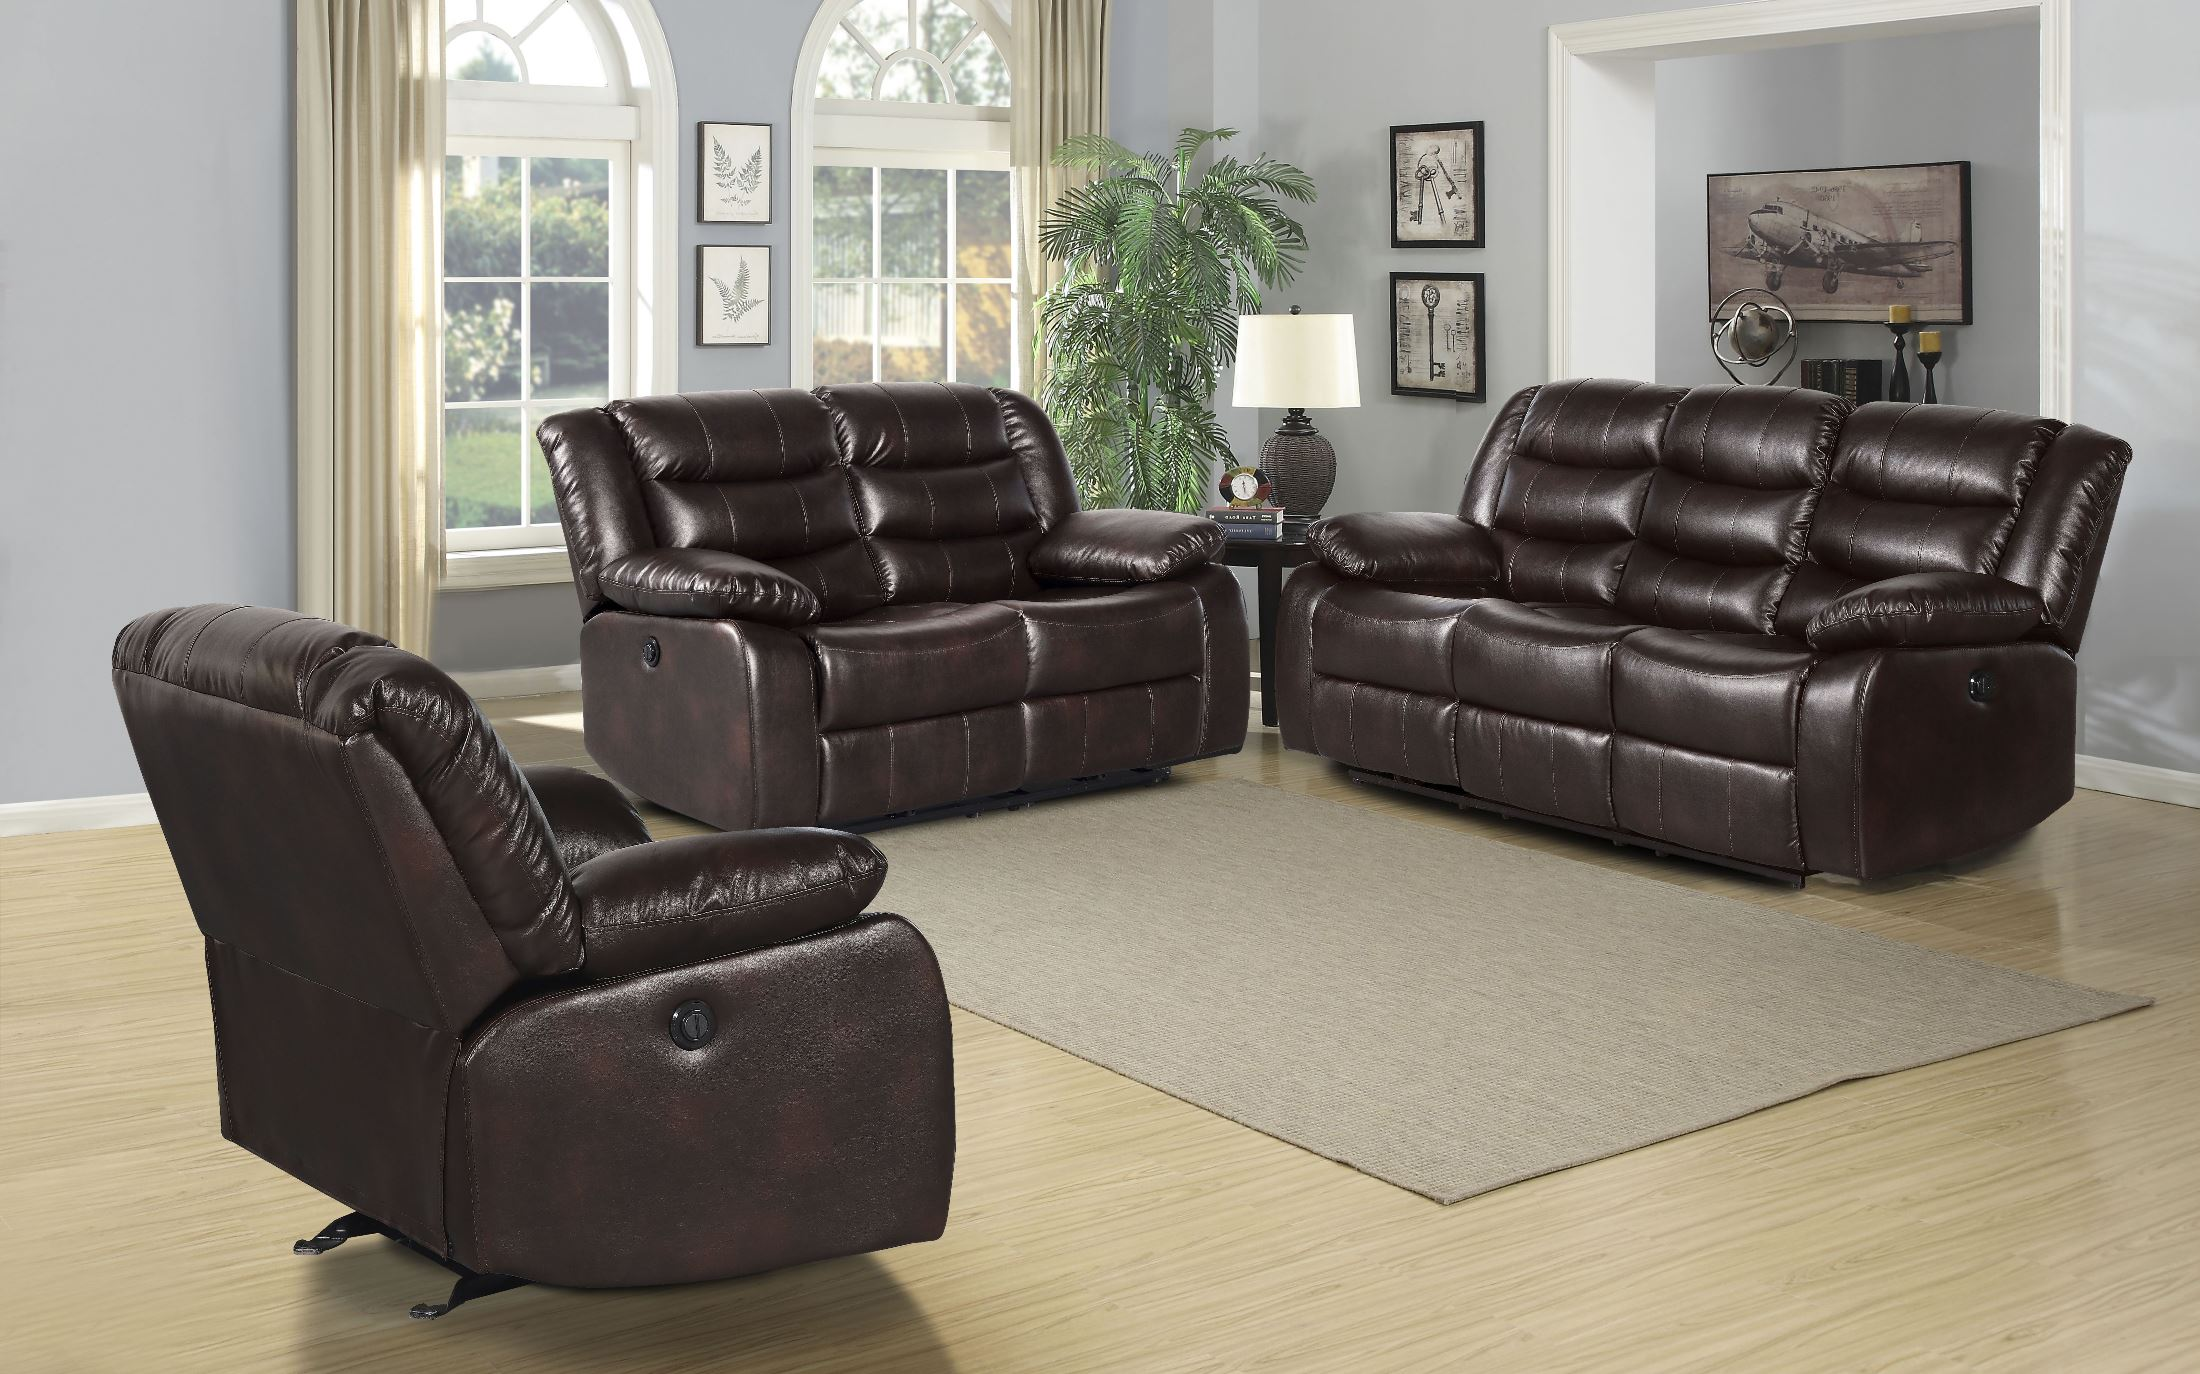 Leather Furniture Traveler Collection: Standard Furniture Bennet Brown Faux Leather Living Room